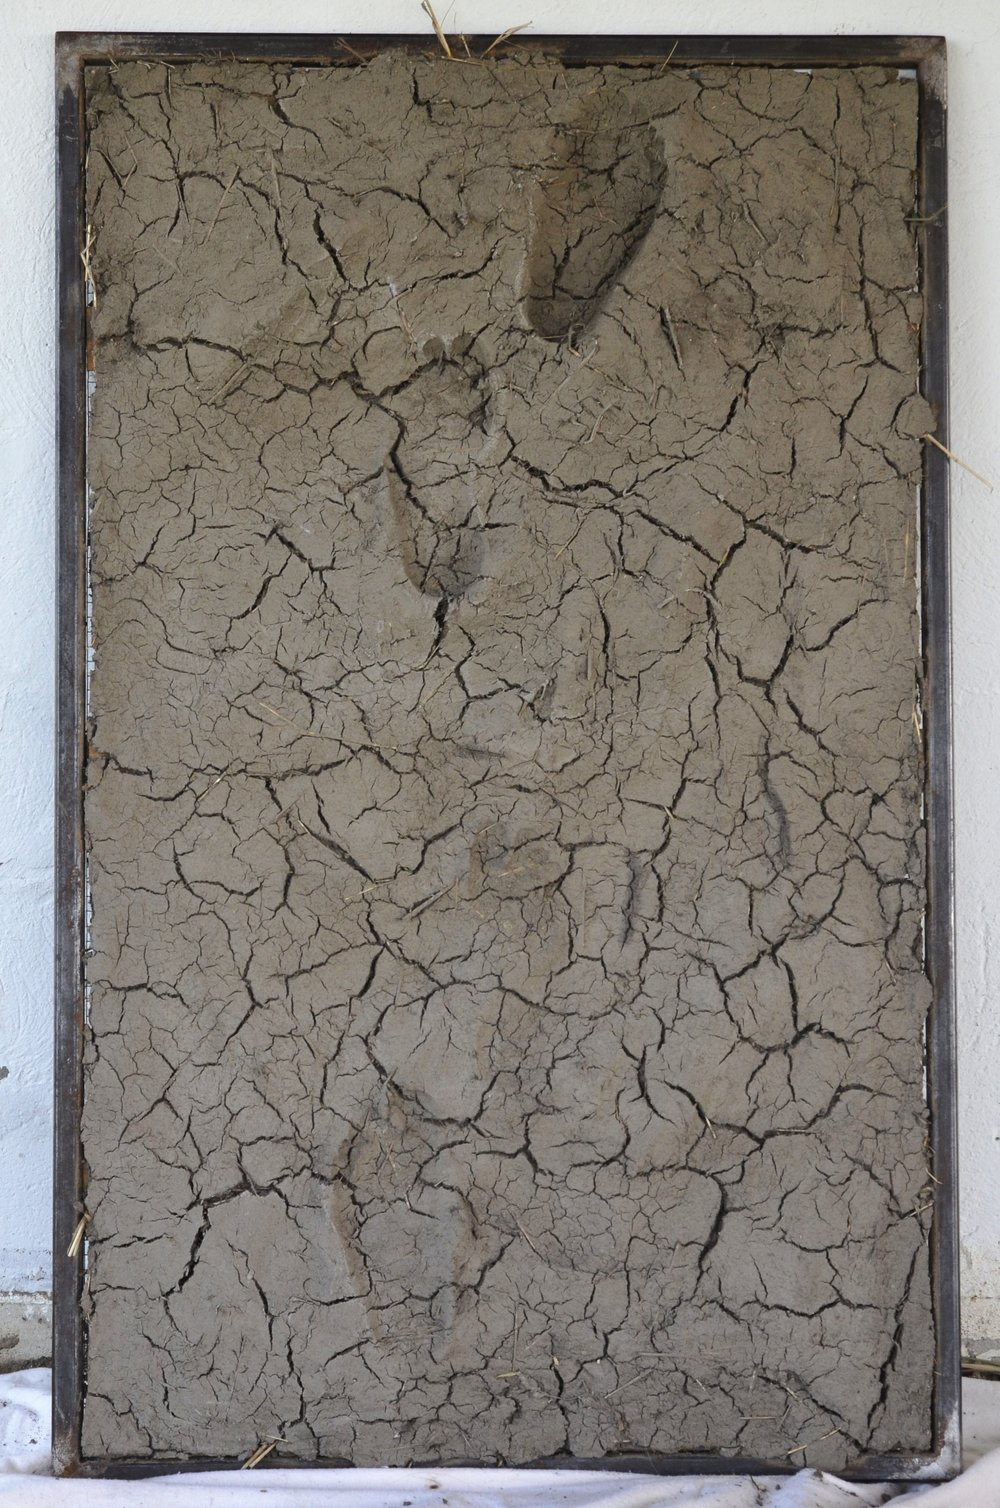 From the studio, here is a sunken relief made this summer from Vermont soil